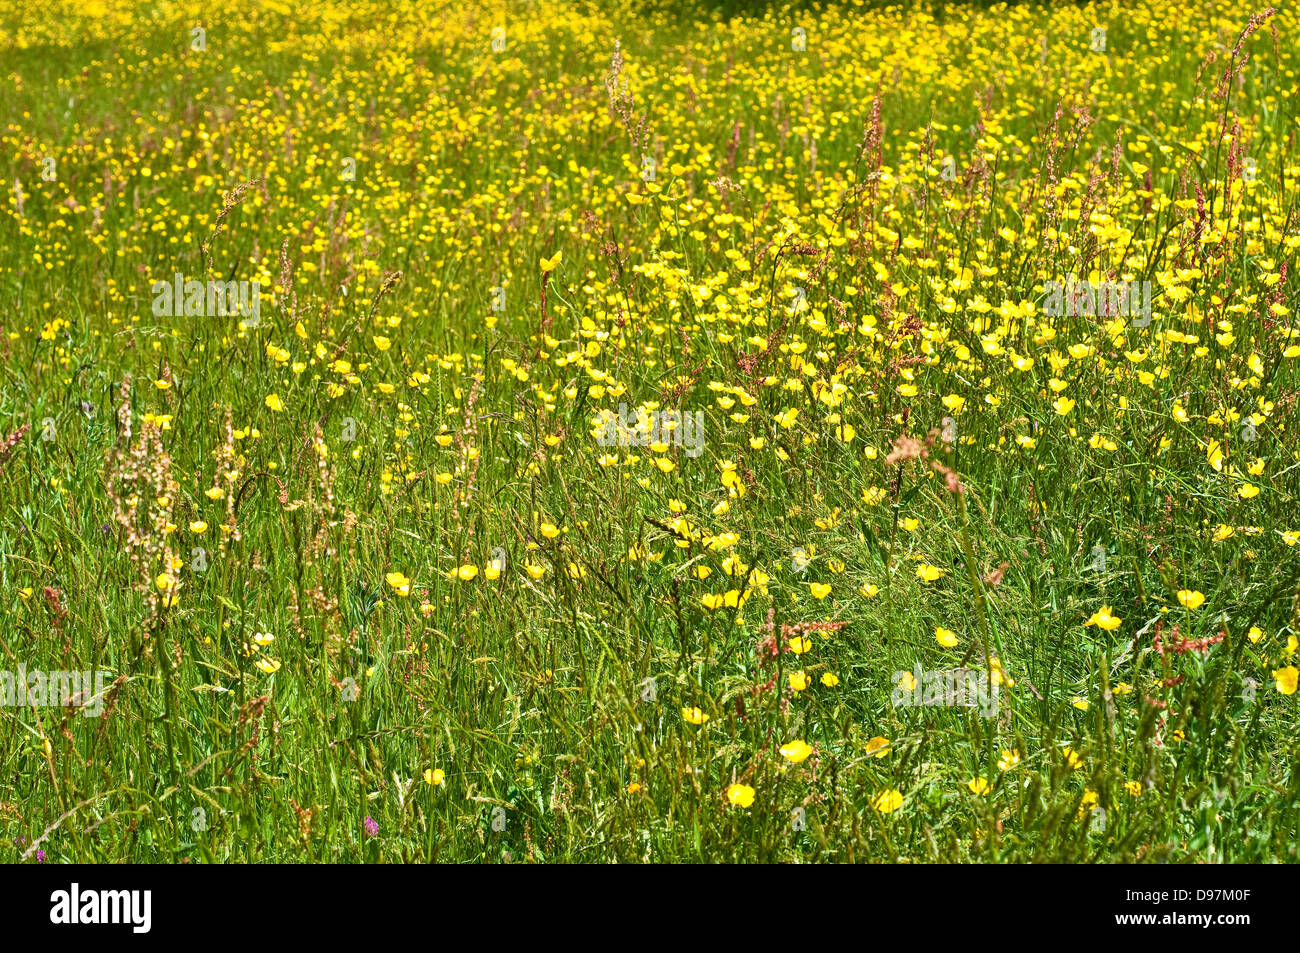 Meadow of yellow buttercups flowers - Stock Image